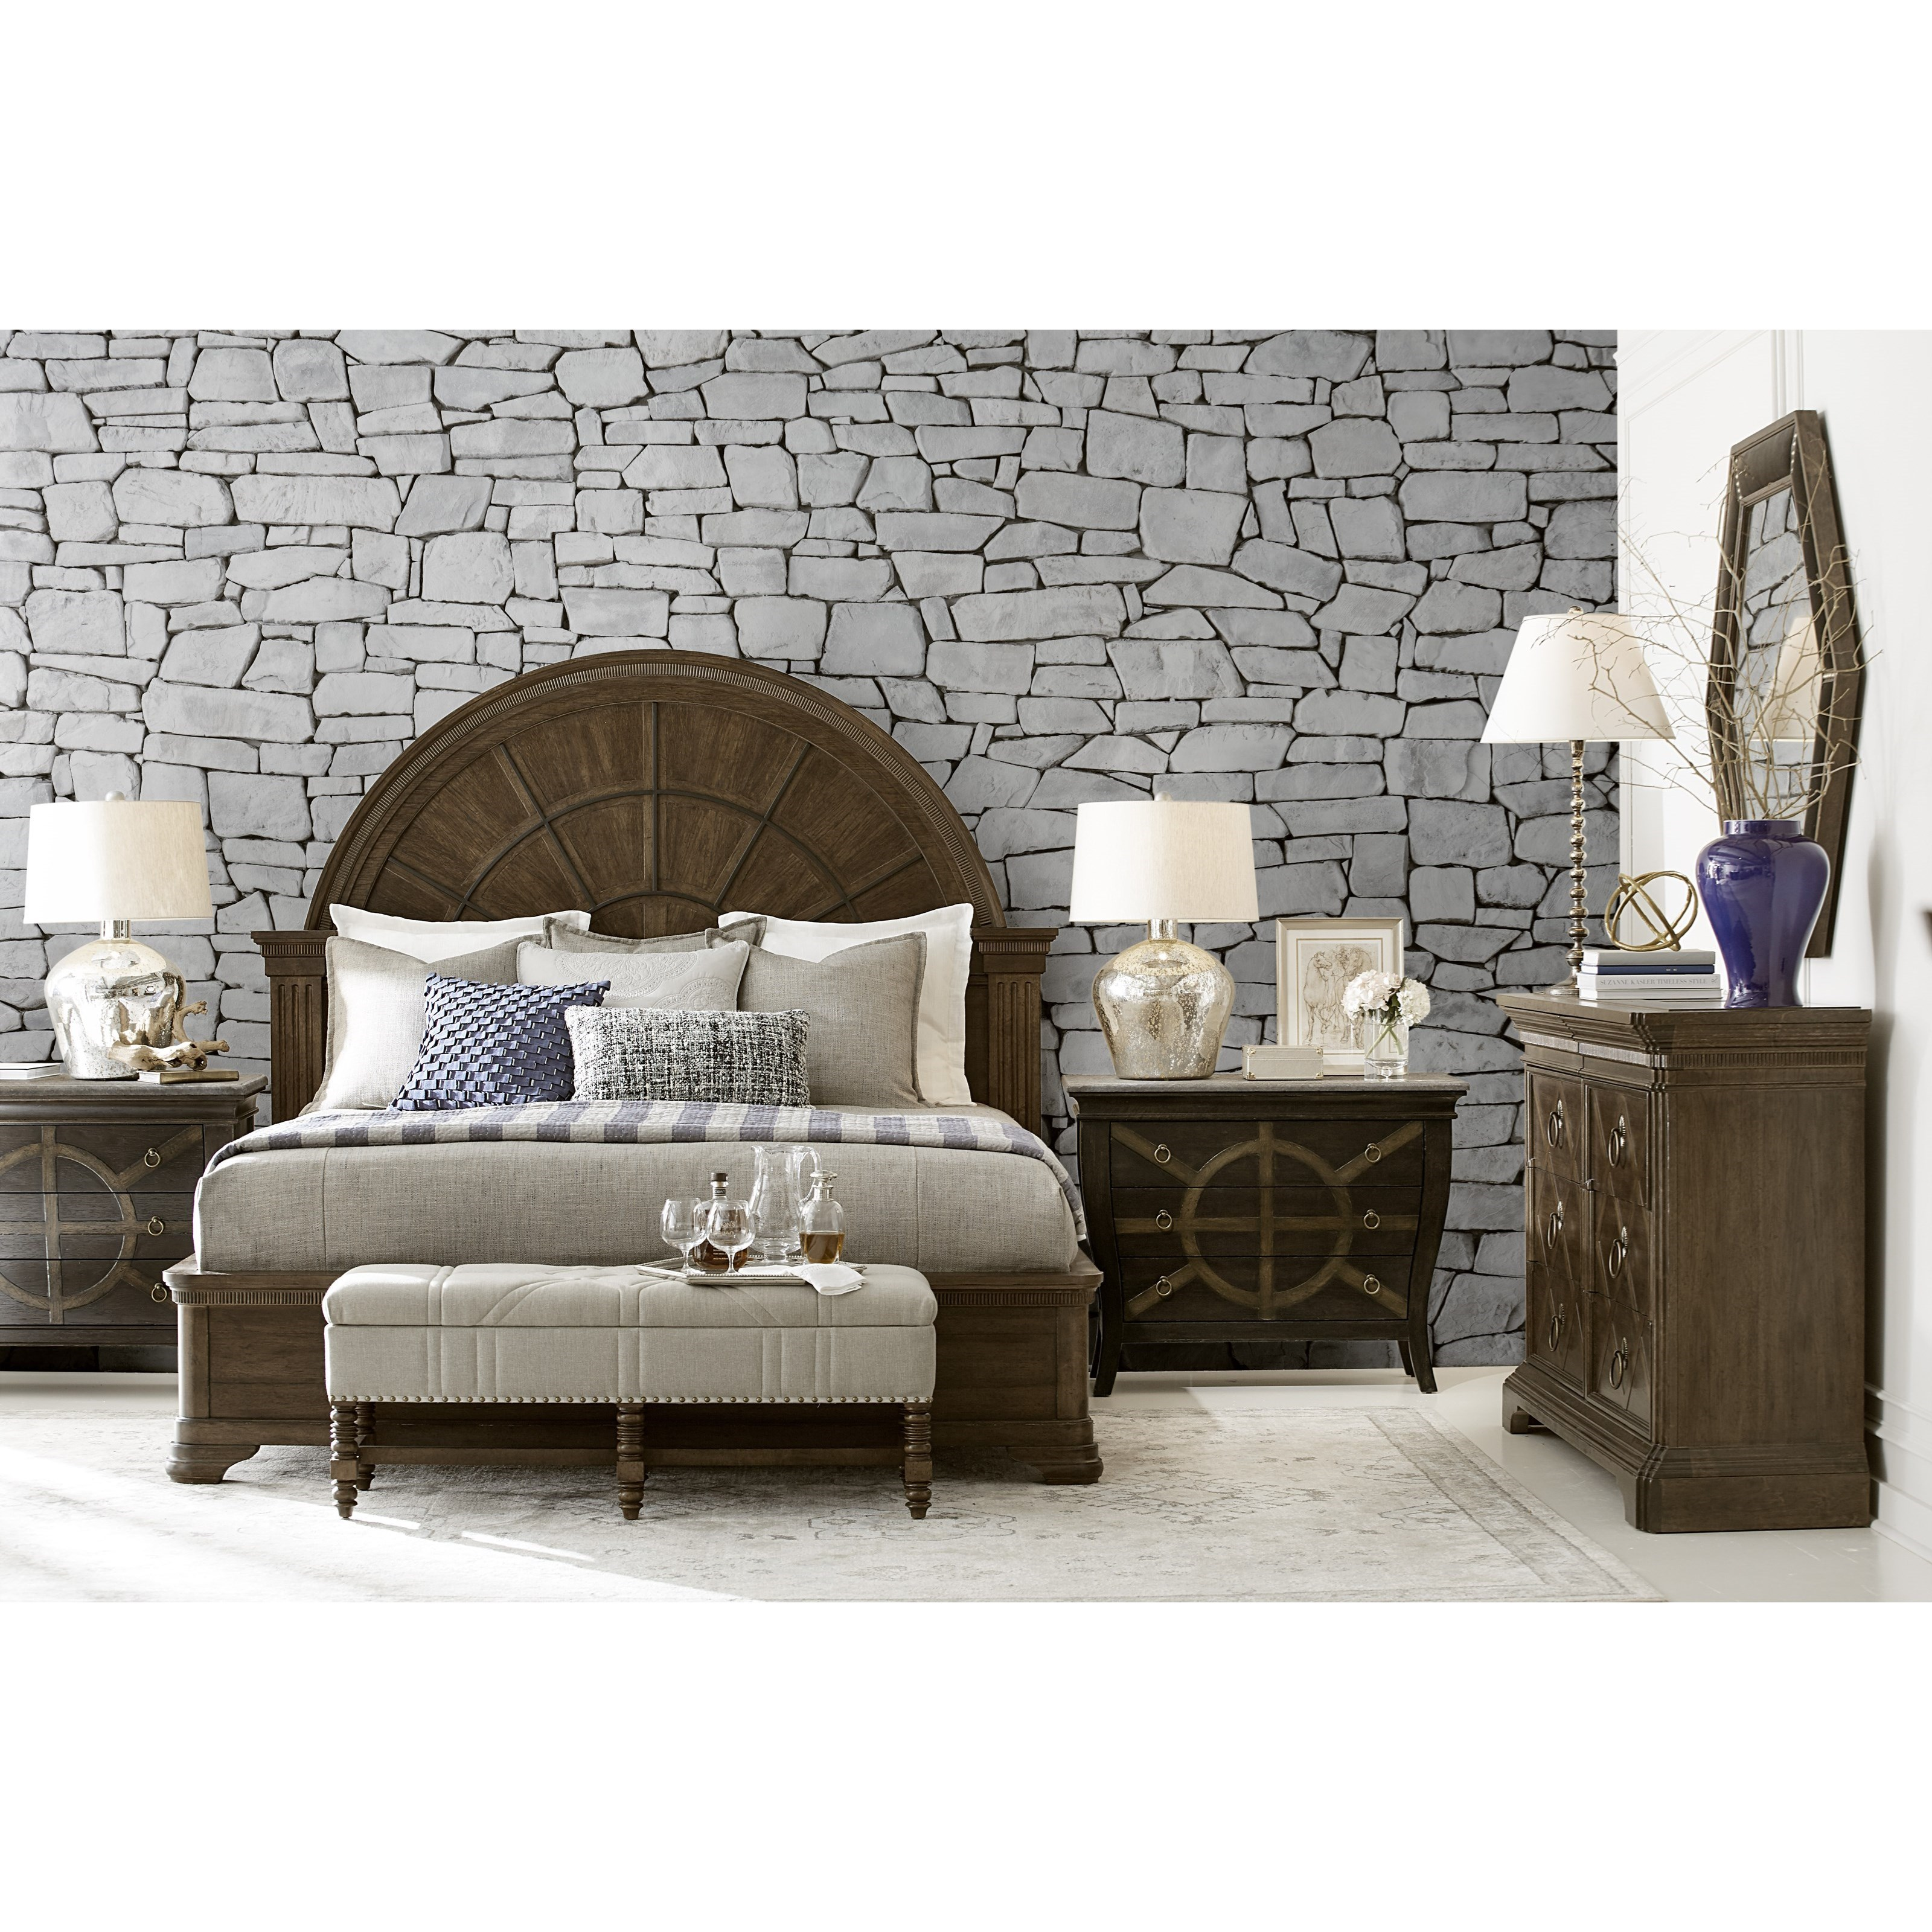 American Chapter King Bedroom Group by A.R.T. Furniture Inc at Home Collections Furniture